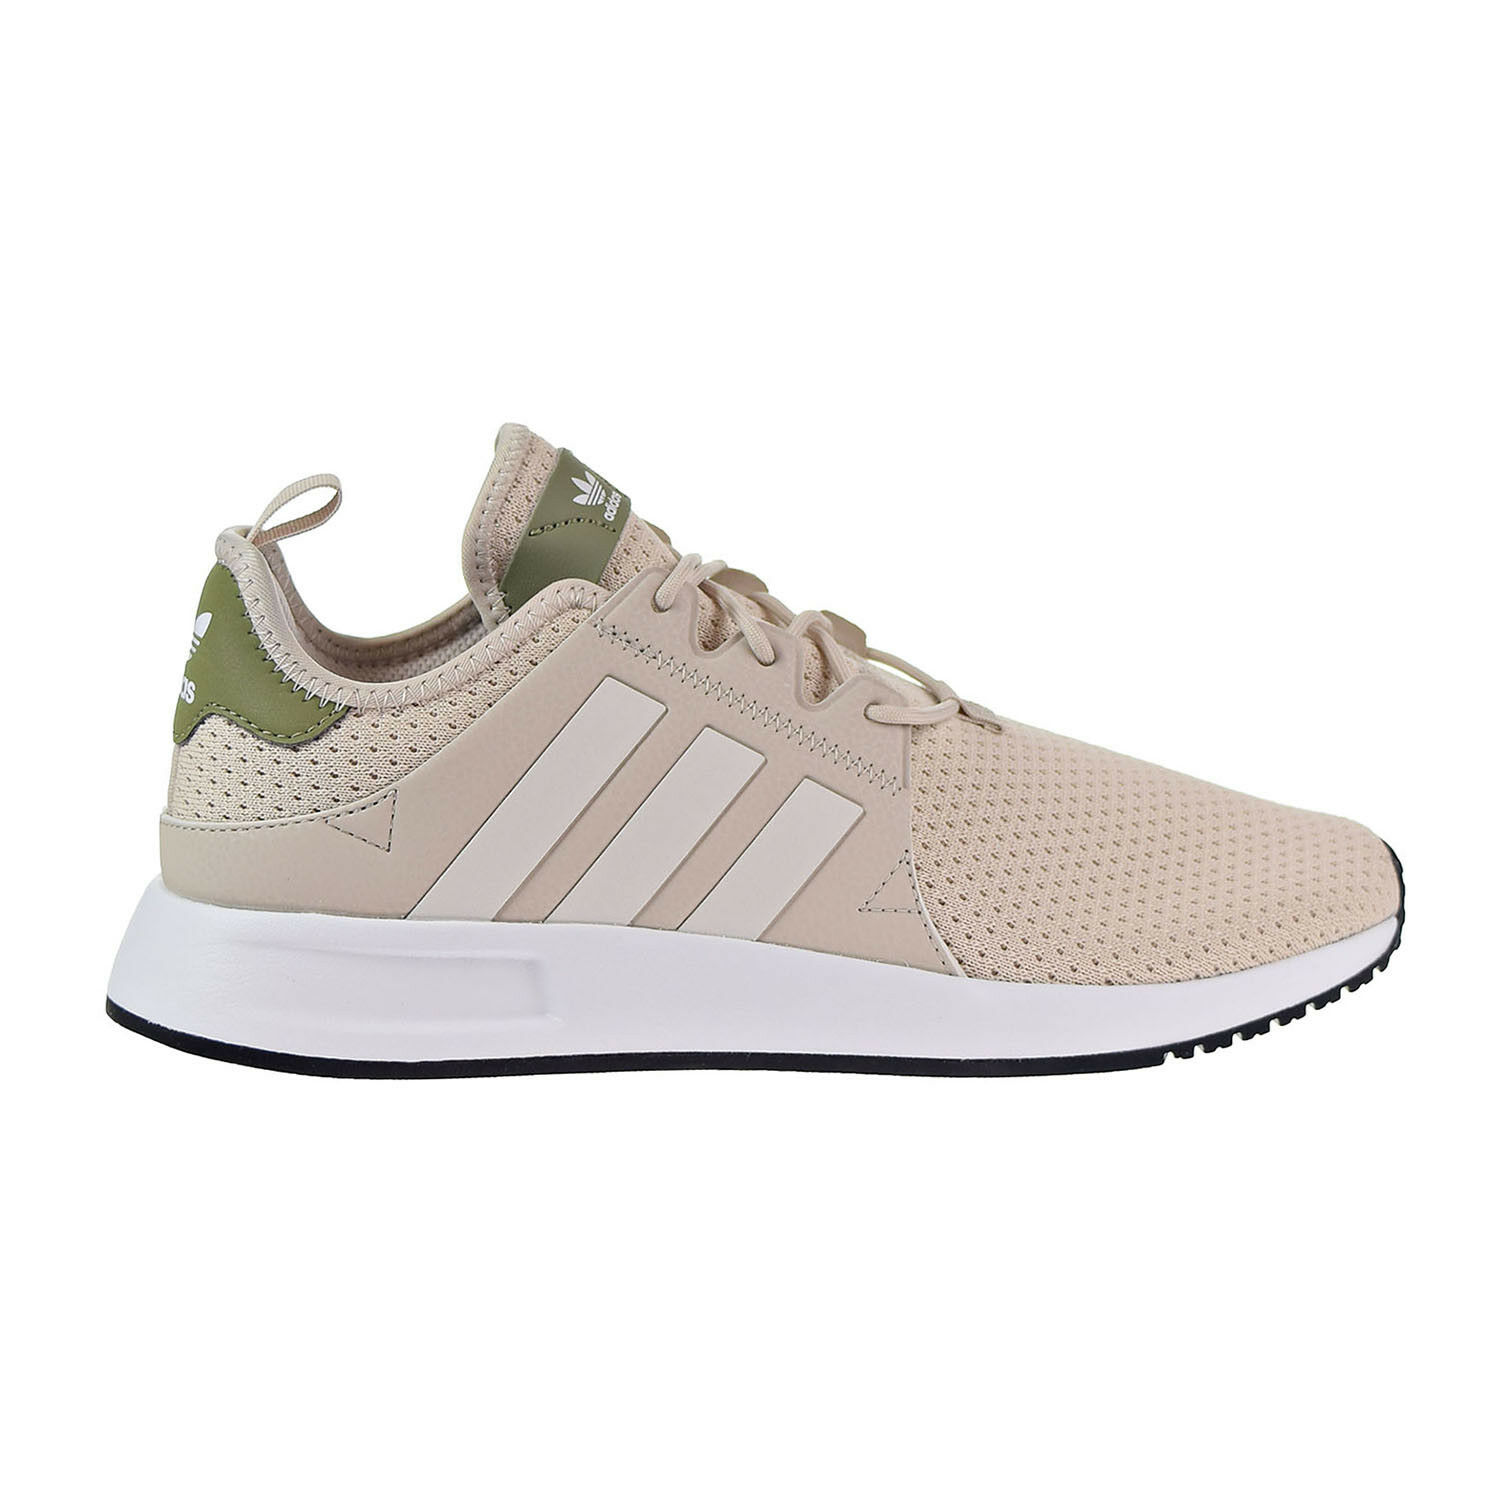 Adidas X_PLR Men's shoes Brown White Trace Cargo CQ2410